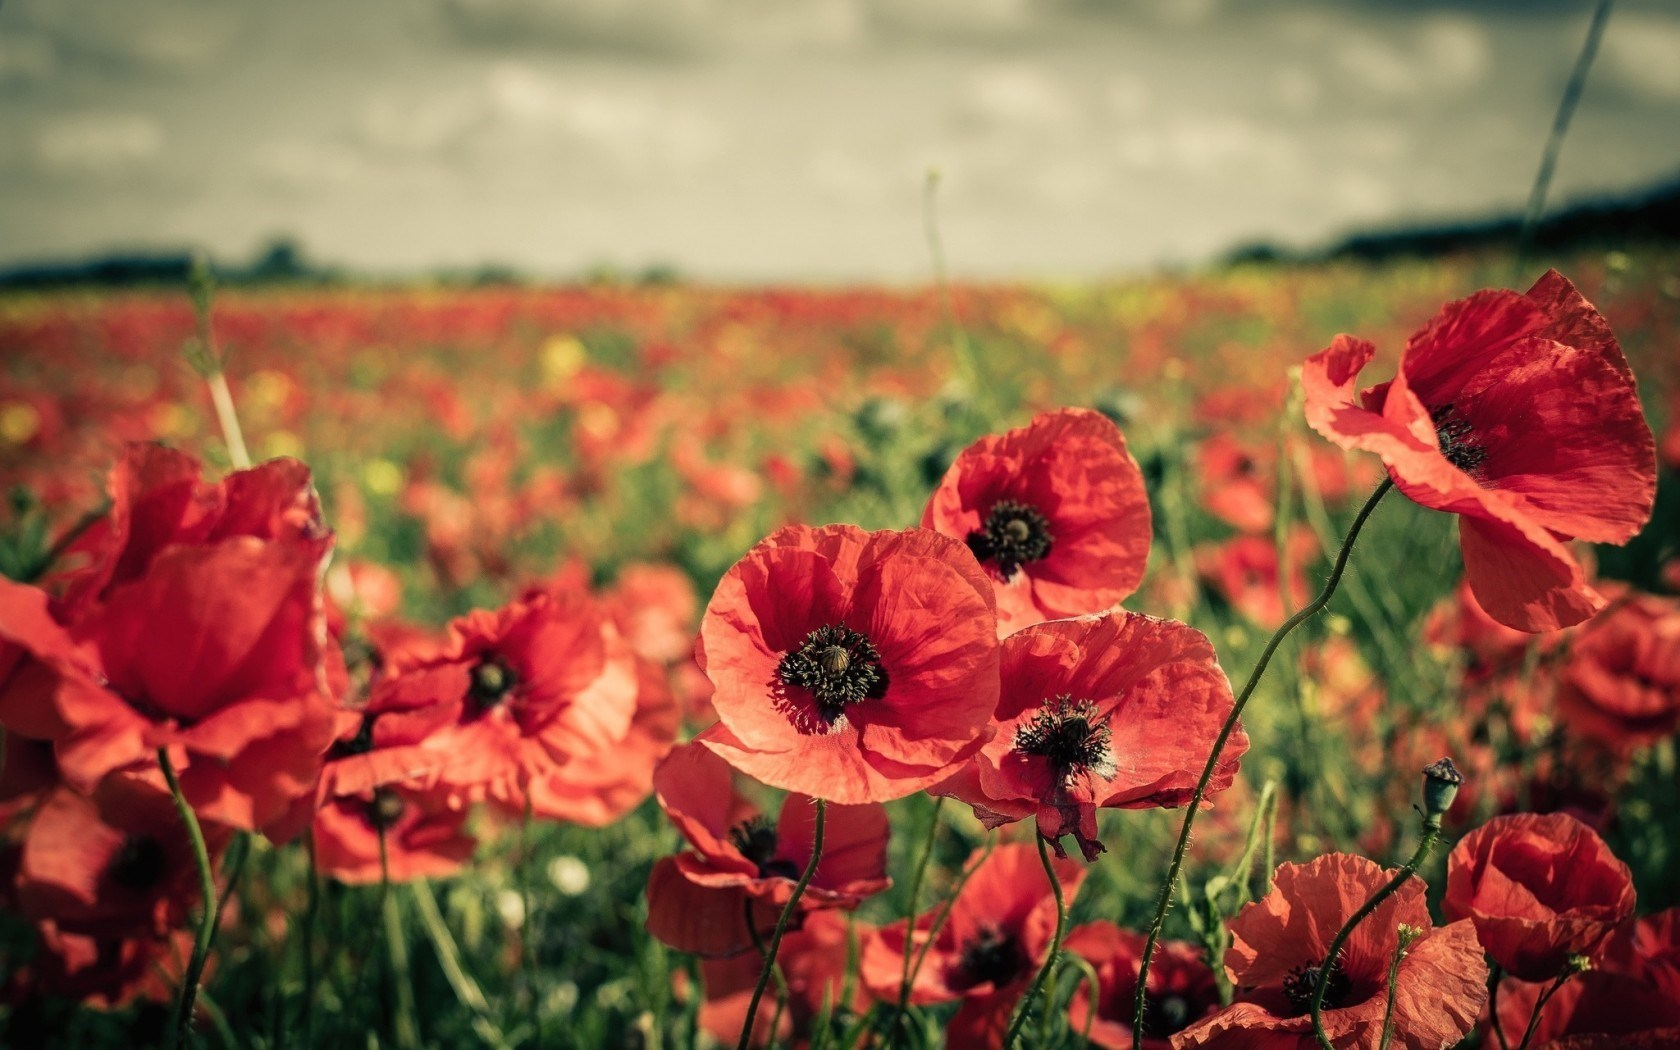 field poppies flowers nature - hd desktop wallpapers | 4k hd